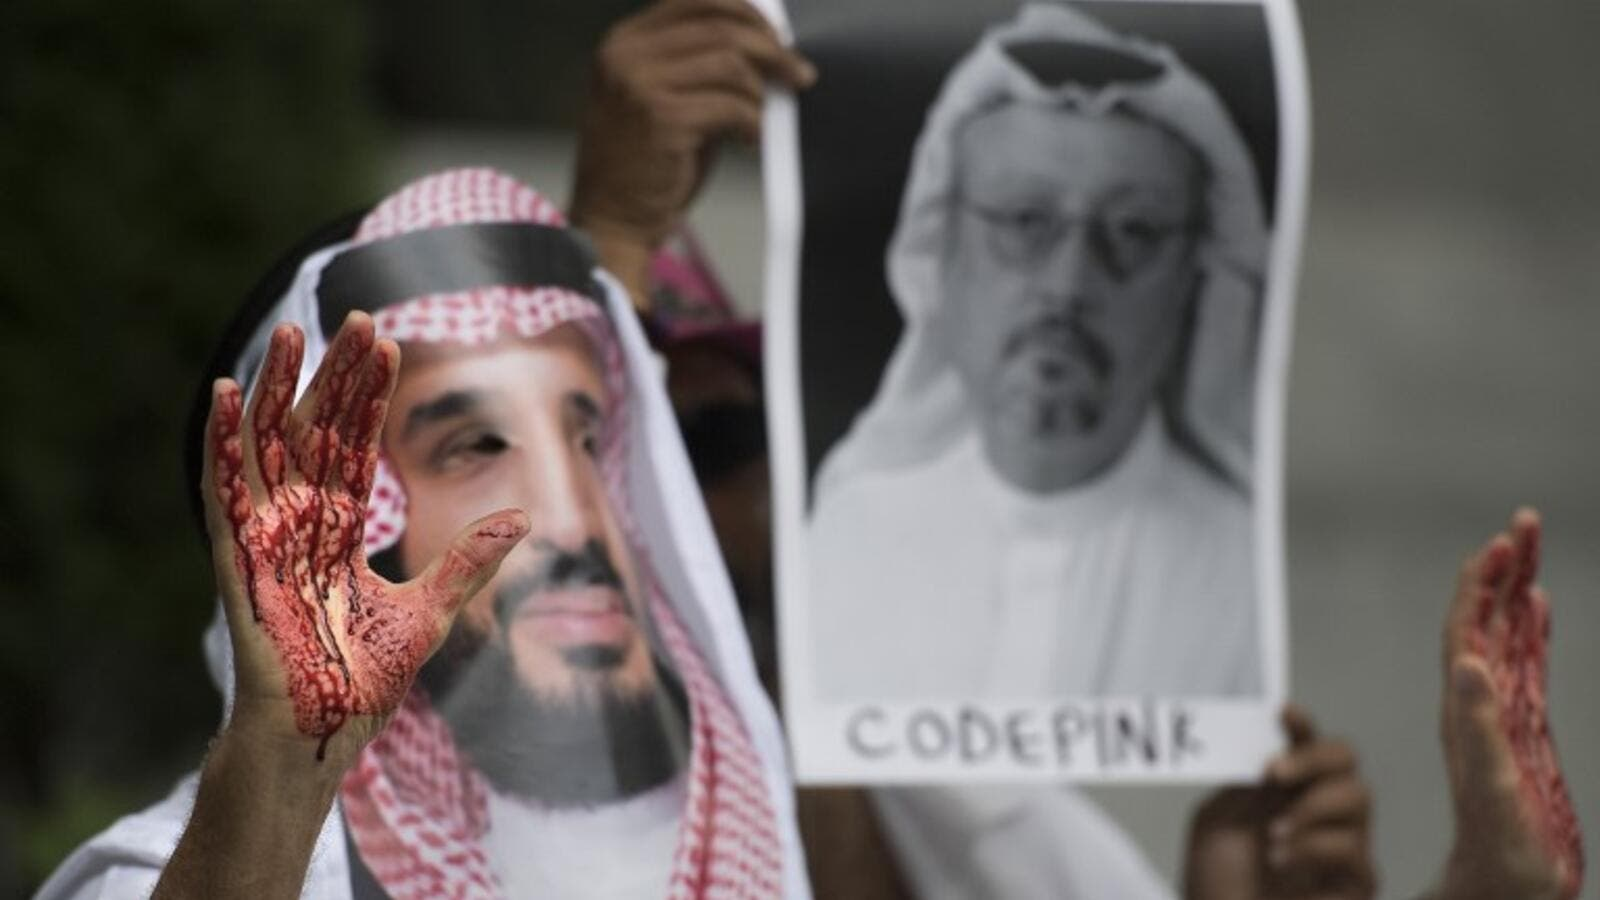 A demonstrator dressed as Saudi Crown Prince Mohammed bin Salman with blood on his hands protests with others outside the Saudi Embassy in Washington, DC. (AFP/File)